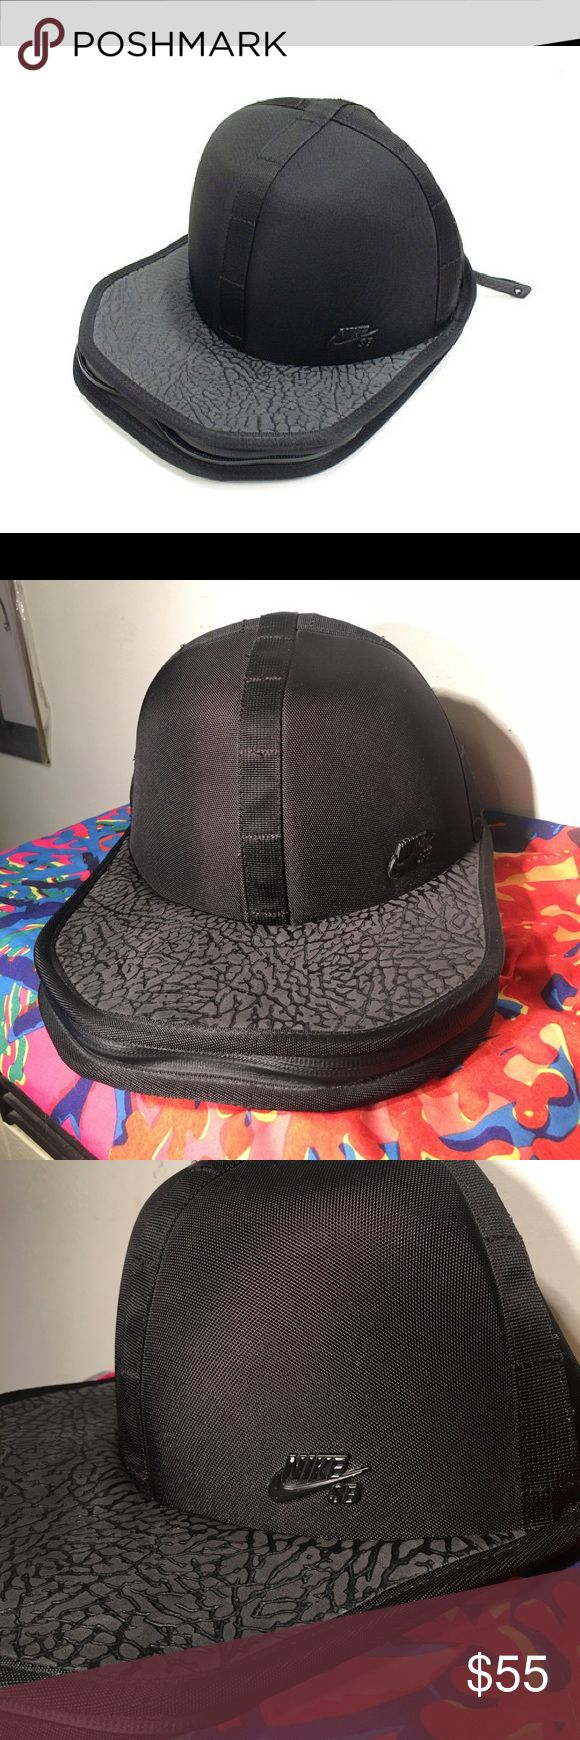 rare Nike SB nylon + leather hat holder Rare Nike SB backpack hat holder attachment. Can be attached to any backpack or carried alone. Perfect for skate bags. Ultra rare unavailable anywhere. Not sure this was ever even released publicly.  GREAT condition! Leather and Nylon. Protect your hat!!!! Nike Accessories